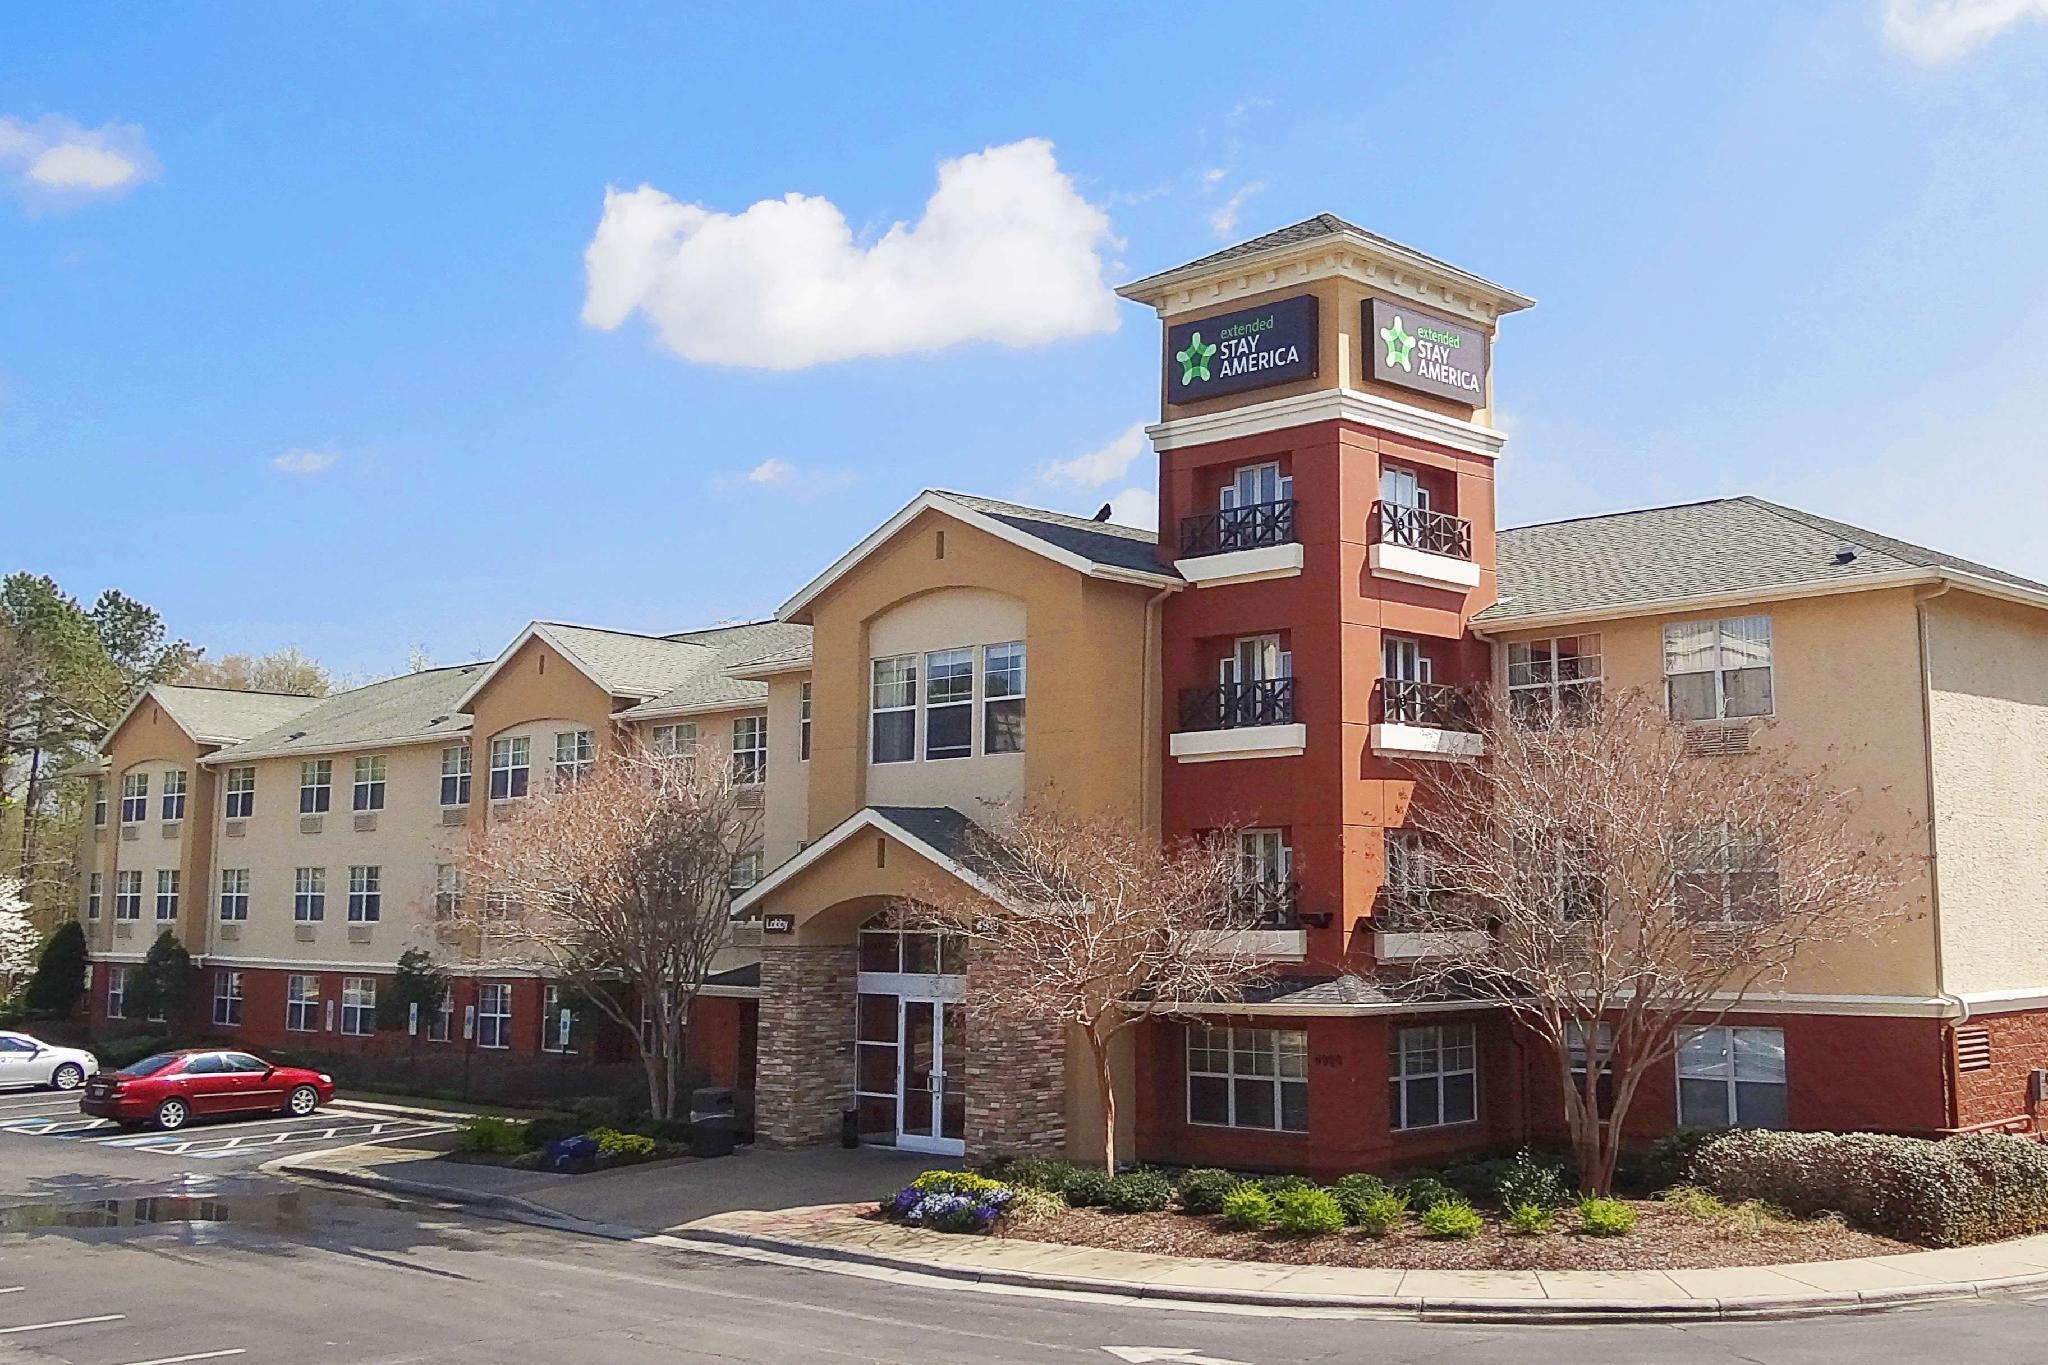 Extended Stay America Raleigh RTP 4919 Miami Blvd.